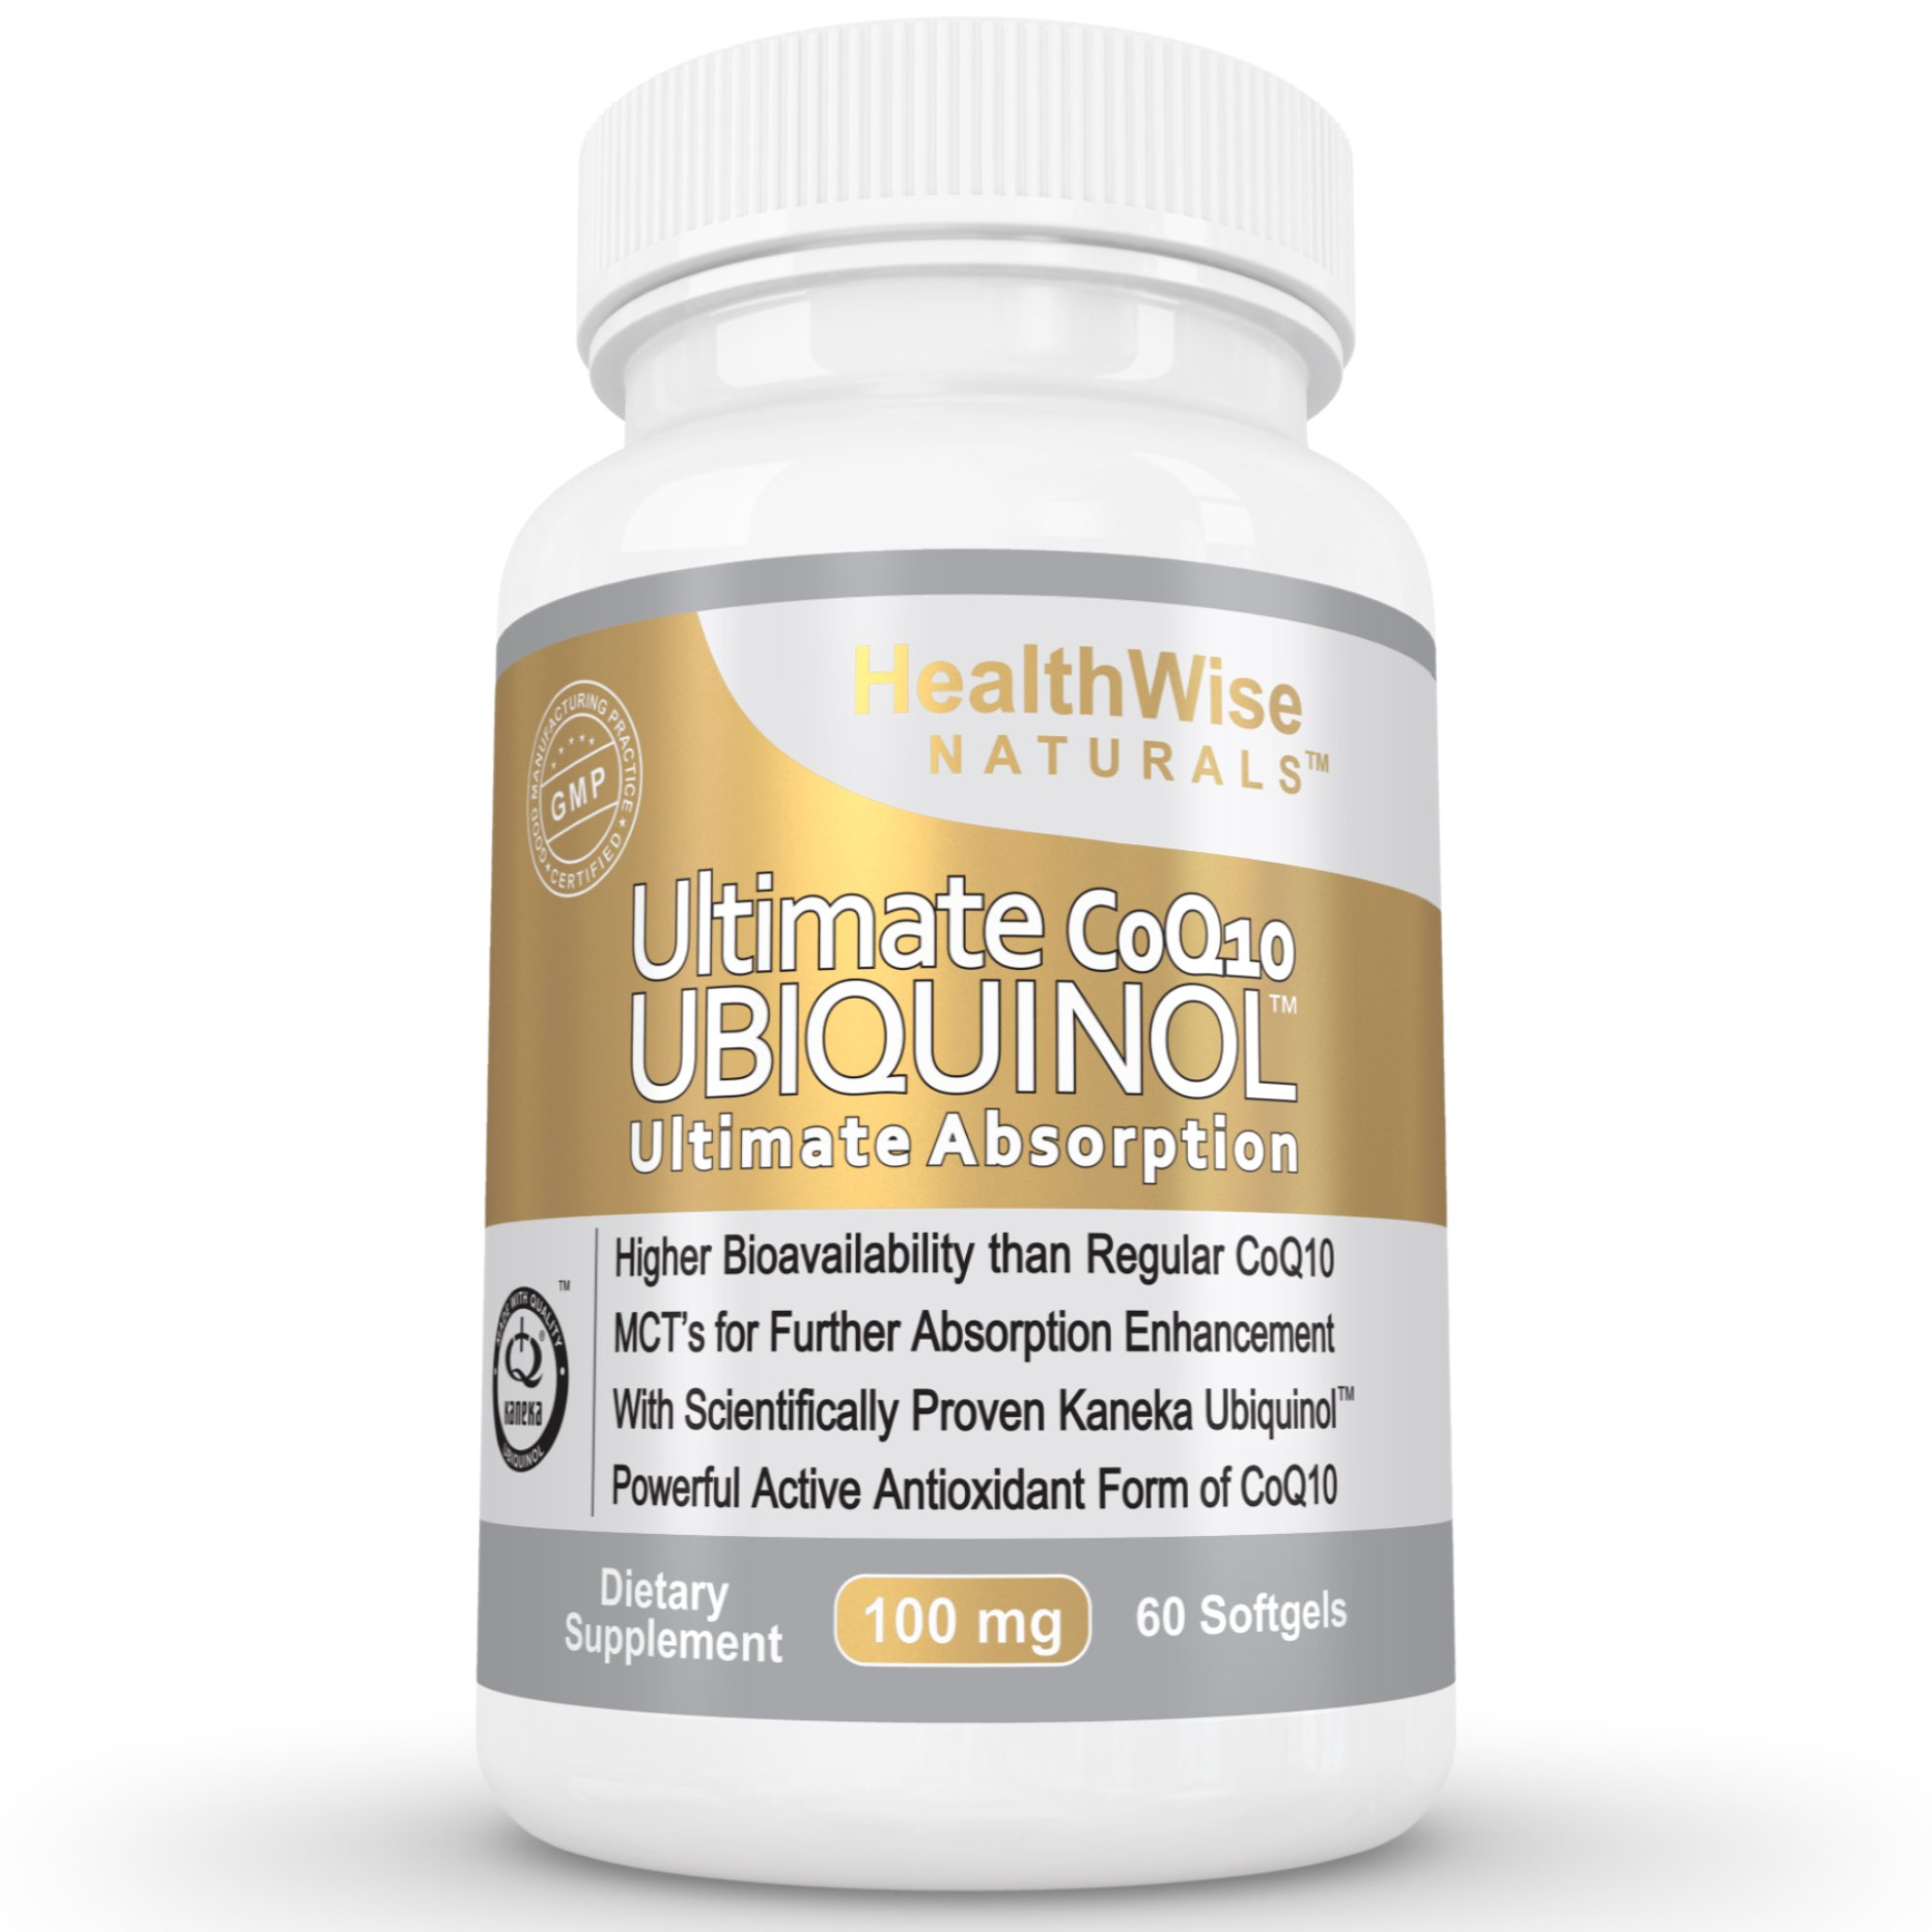 Ultimate CoQ10 UBIQUINOL 100mg - Over 4X More Effective: Maximum Absorption & Potency - Non-GMO/Soy Free - Kaneka QH - Supreme Cardiovascular, Antioxidant & Anti-Aging Supplement - 60 Liquid Softgels